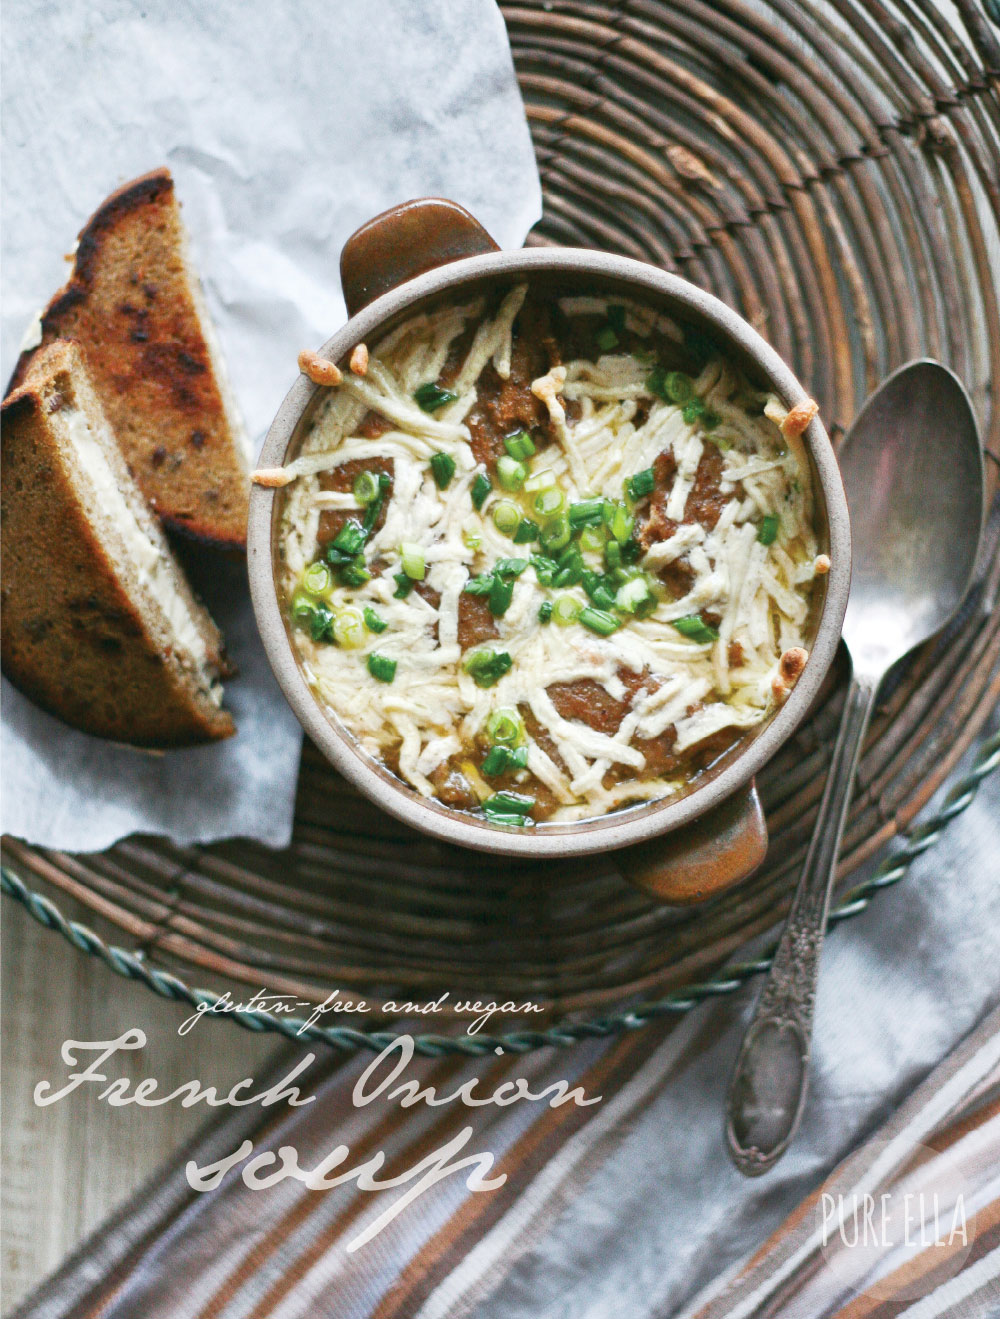 Pure Ella-Gluten-free-Vegan-French-Onion-Soup-recipe2